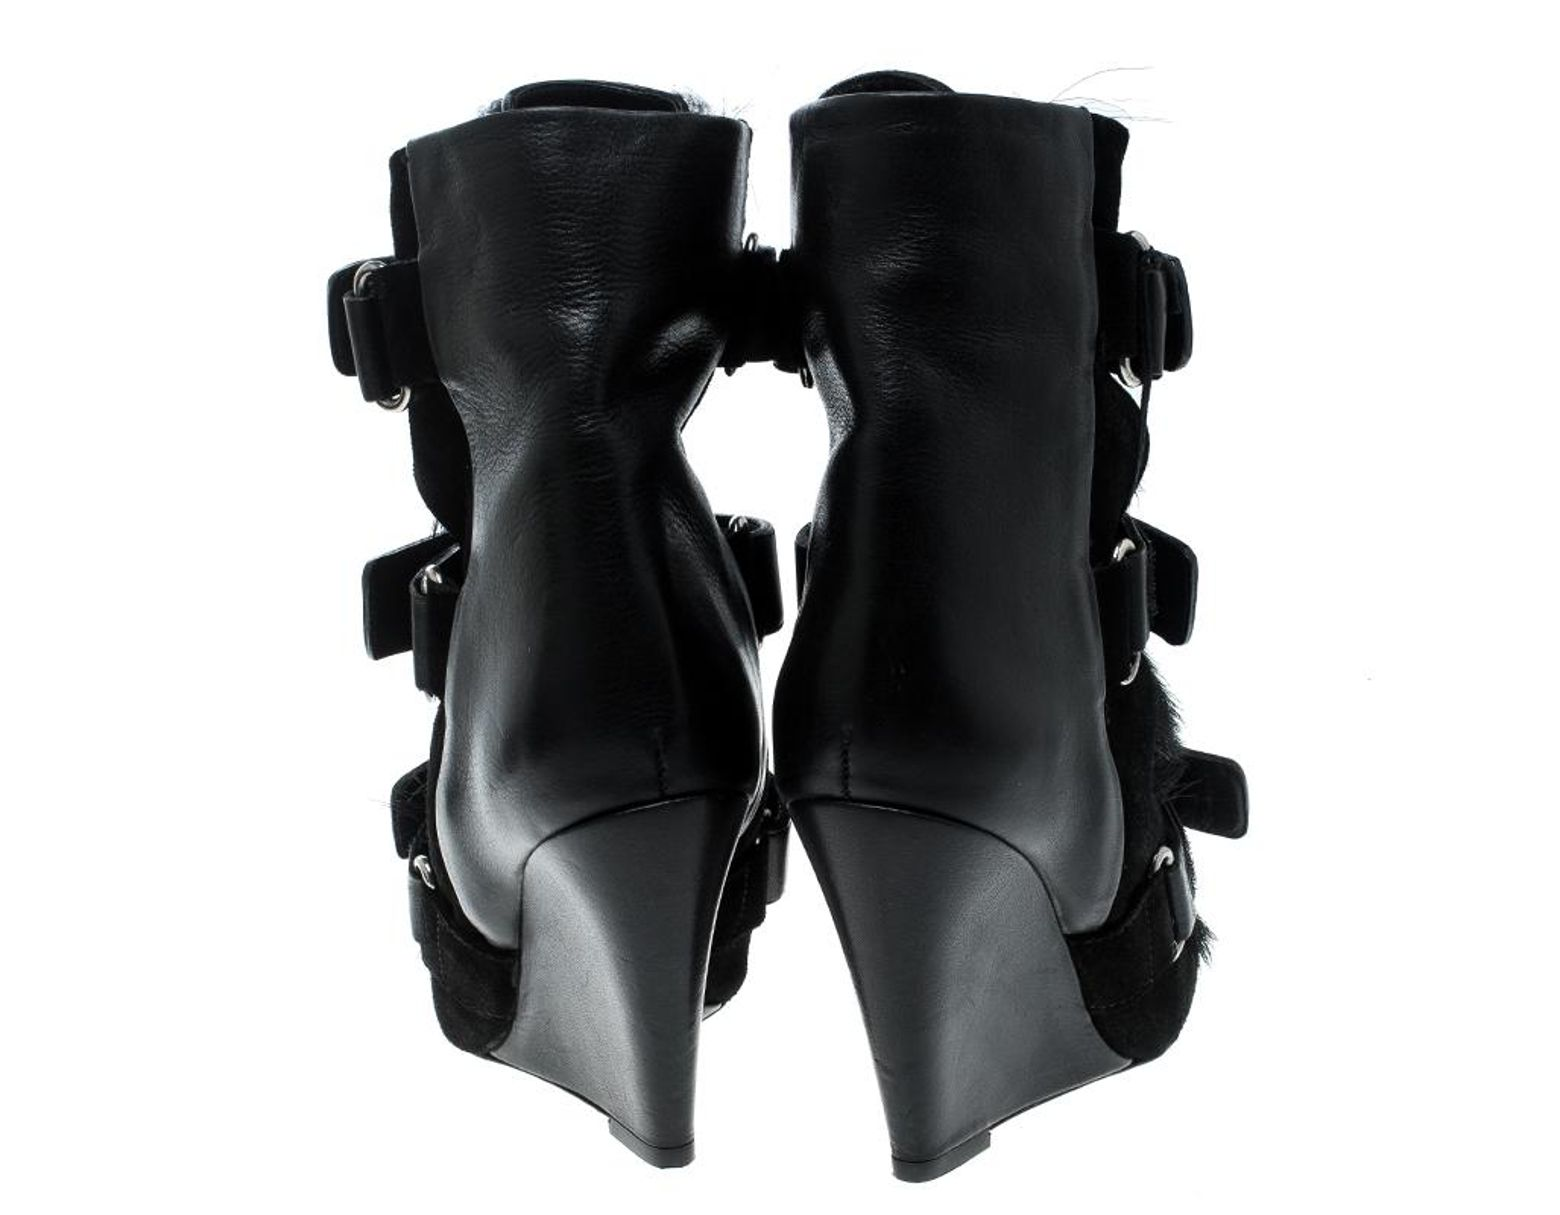 63a2854080dcb Isabel Marant Black Suede And Calf Hair Scarlet Wedge Boots Size 36 in Black  - Lyst